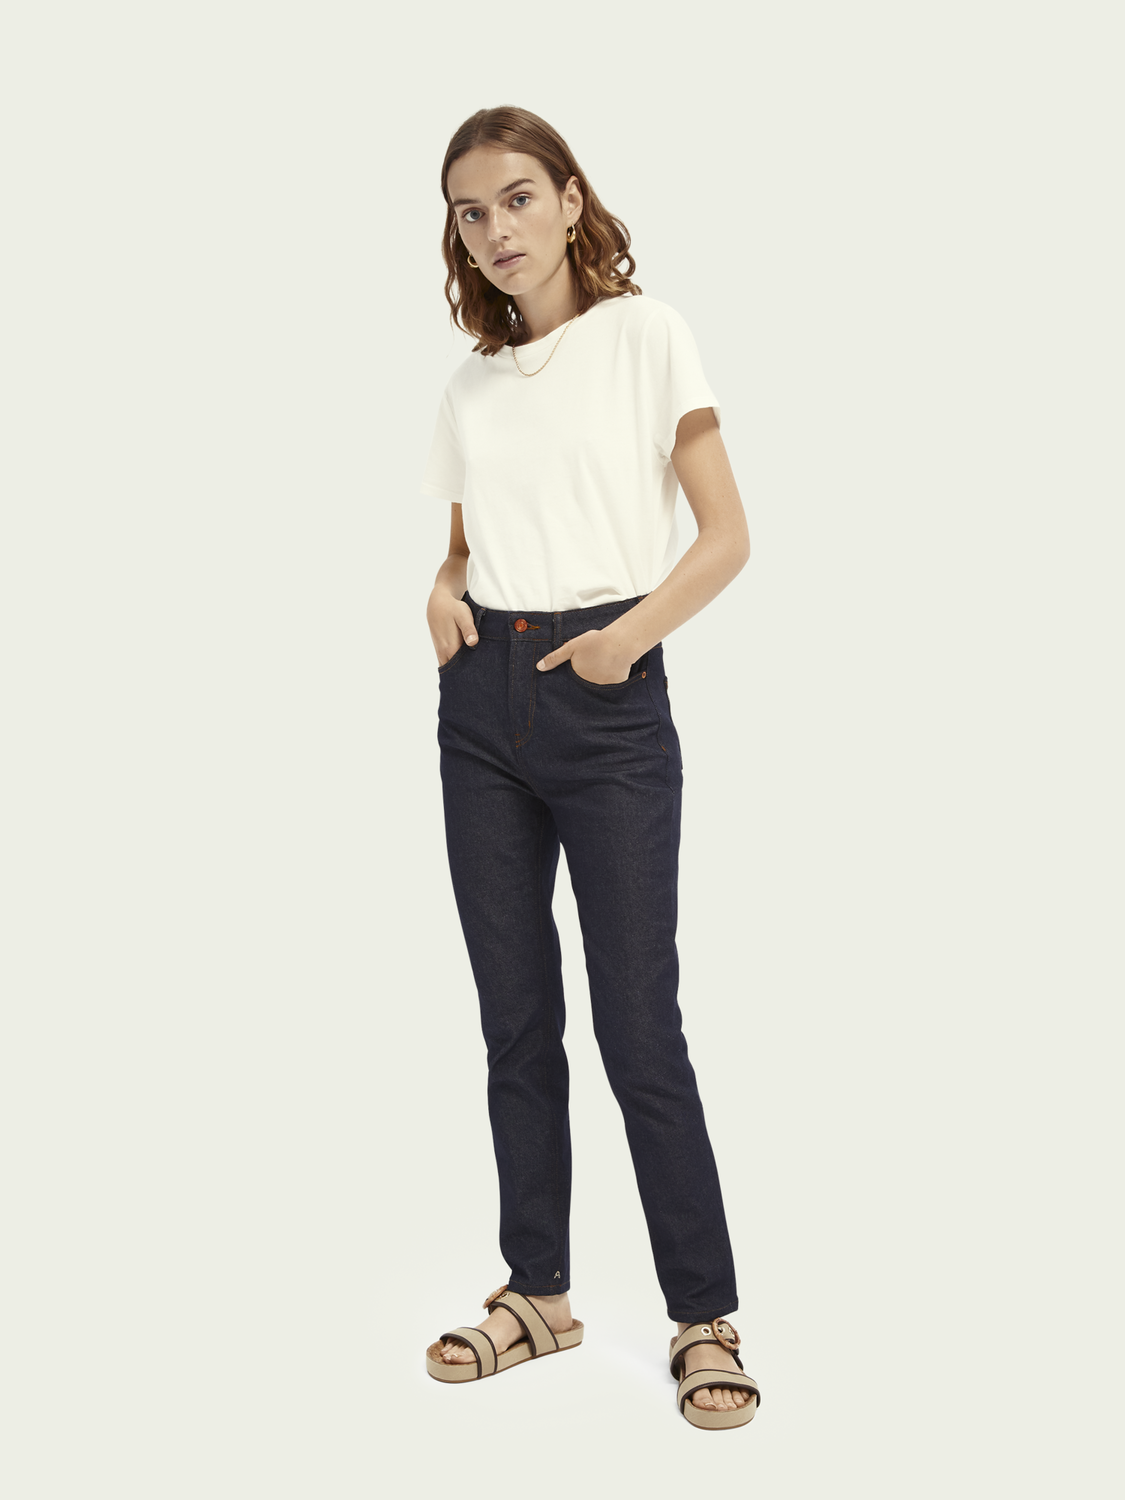 Women High Five high-rise slim-leg jeans - Who Dares Wins